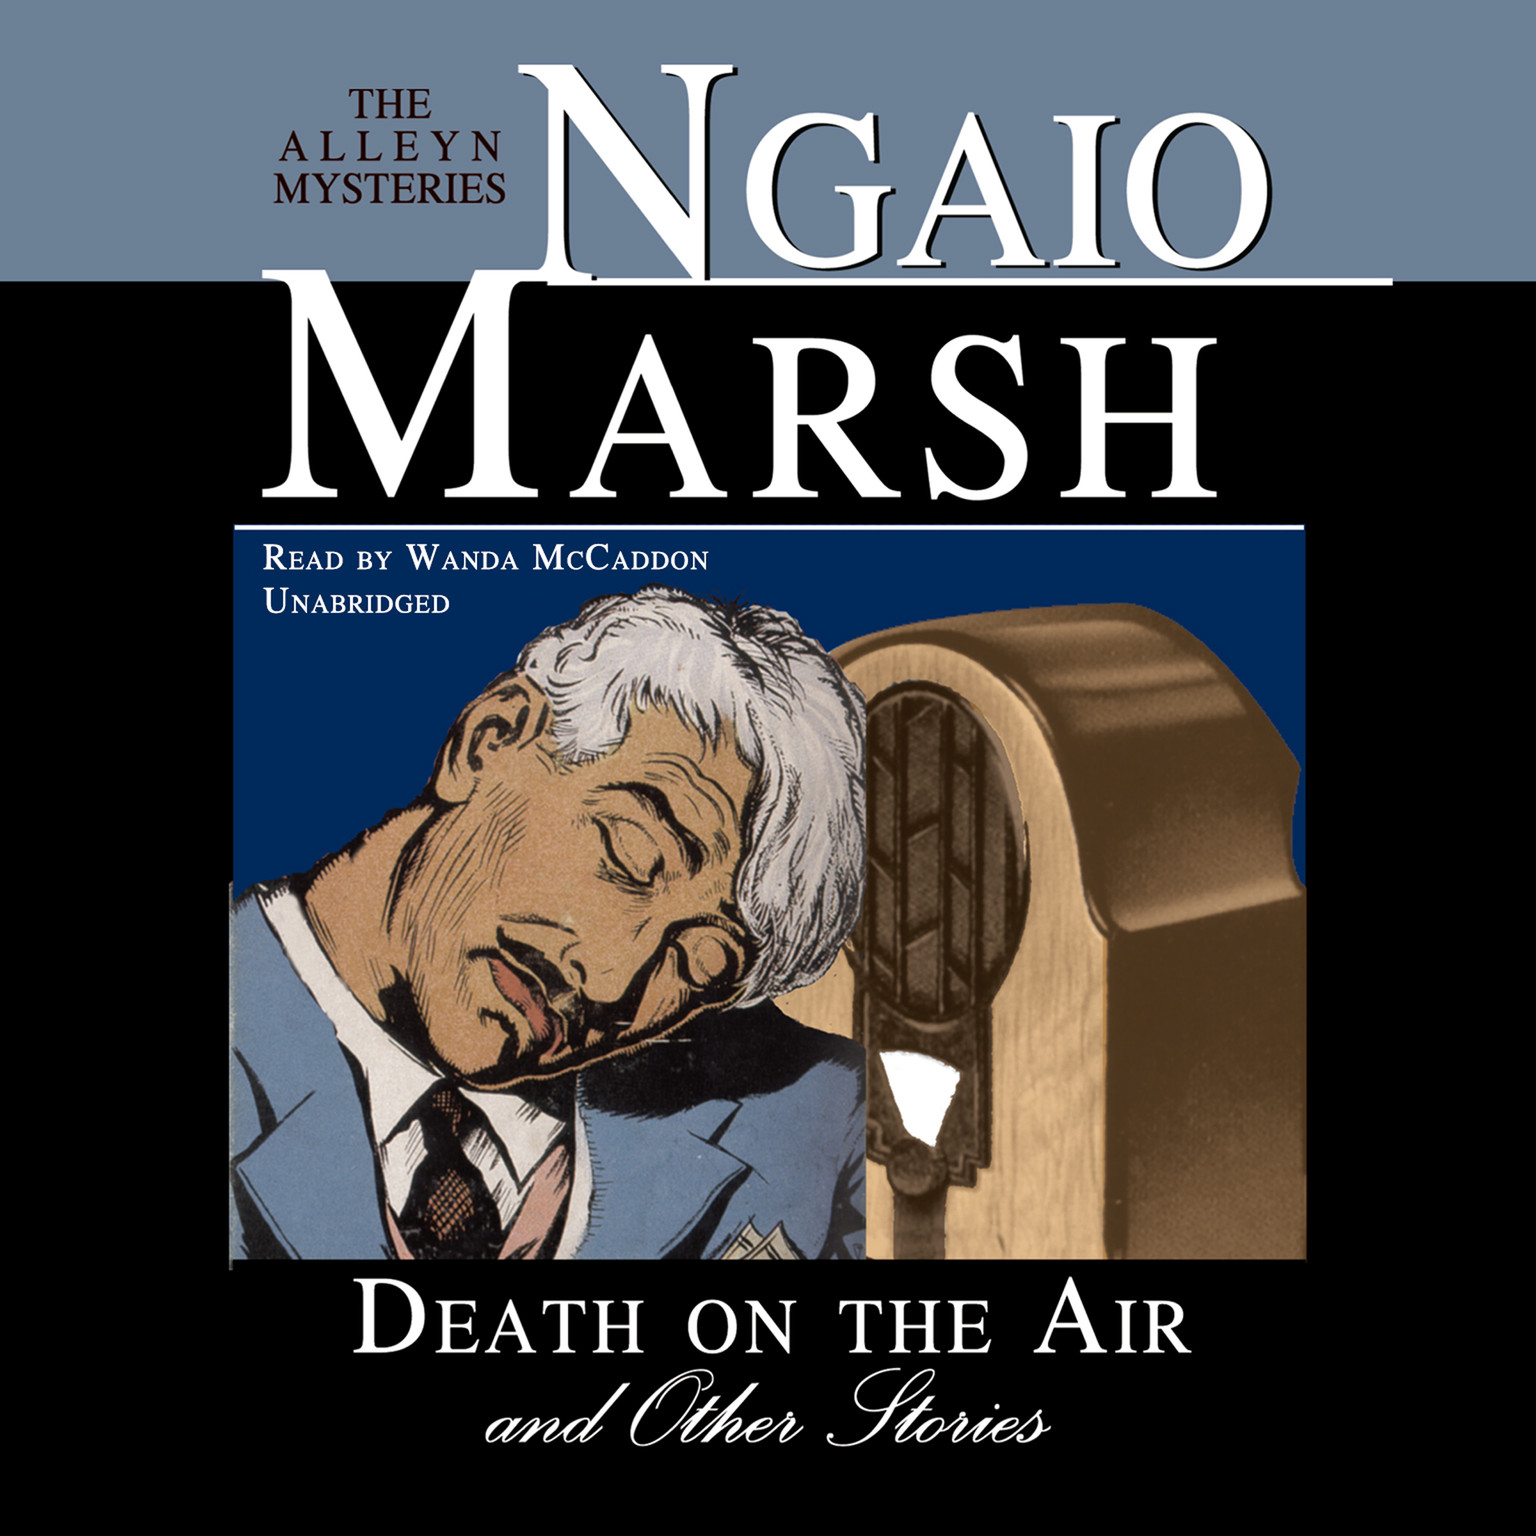 Printable Death on the Air, and Other Stories Audiobook Cover Art